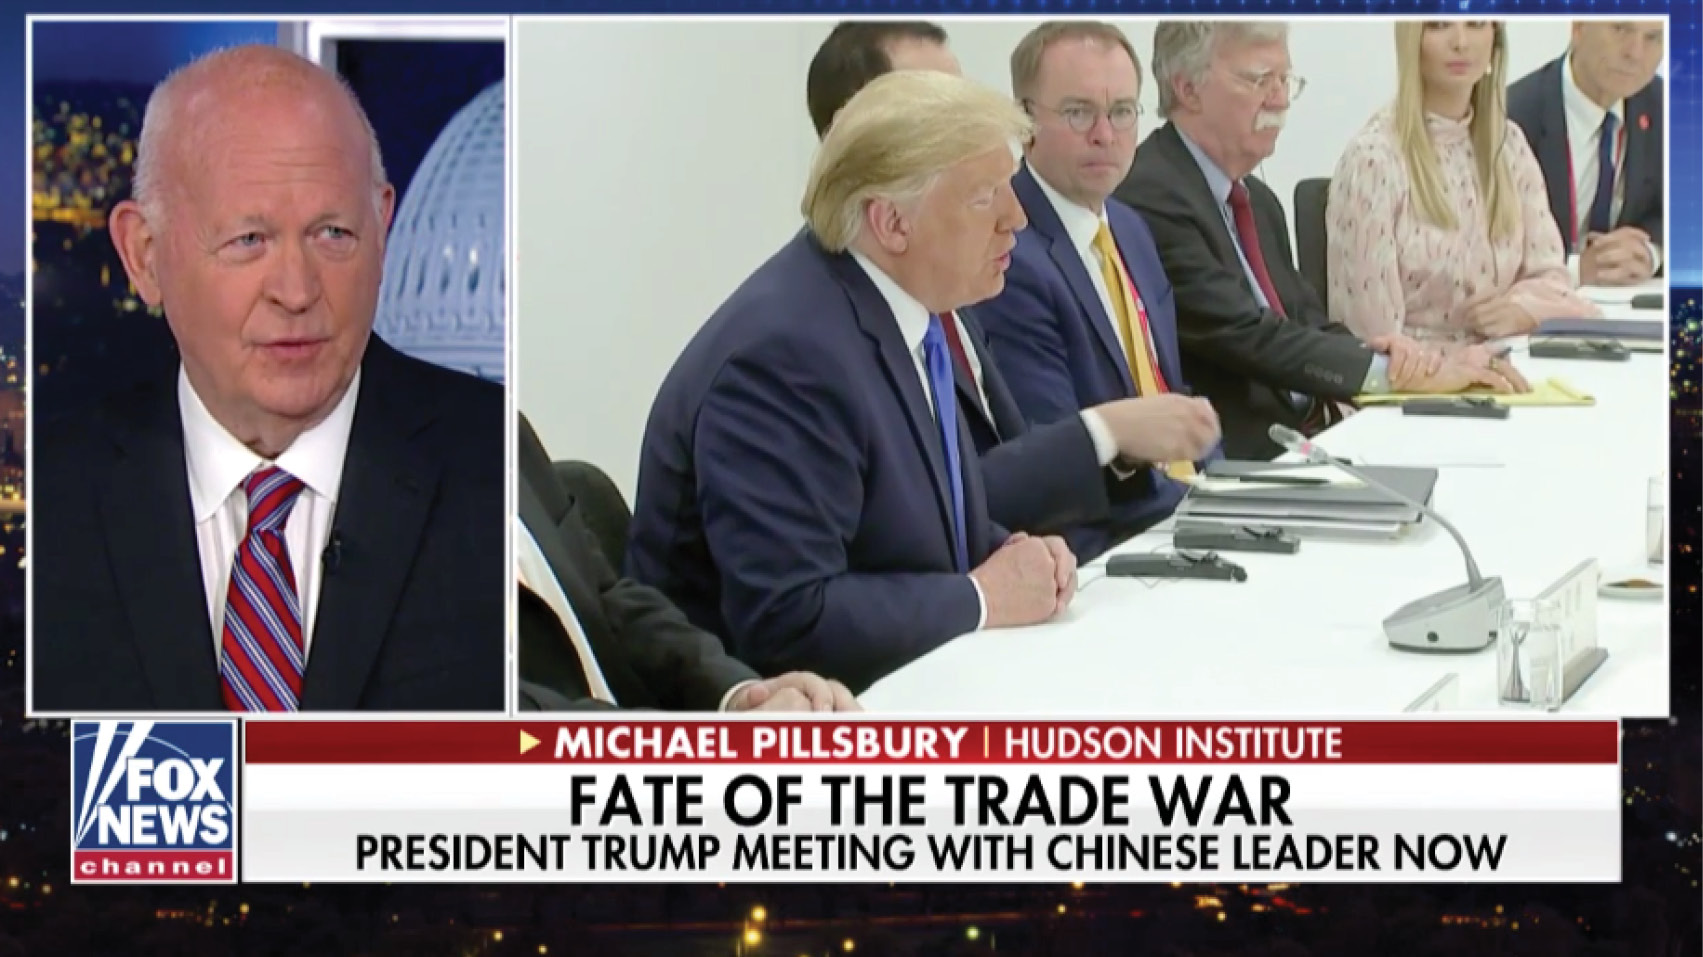 Michael Pillsbury weighs in on whether Trump's meeting with President Xi will restart trade talks.